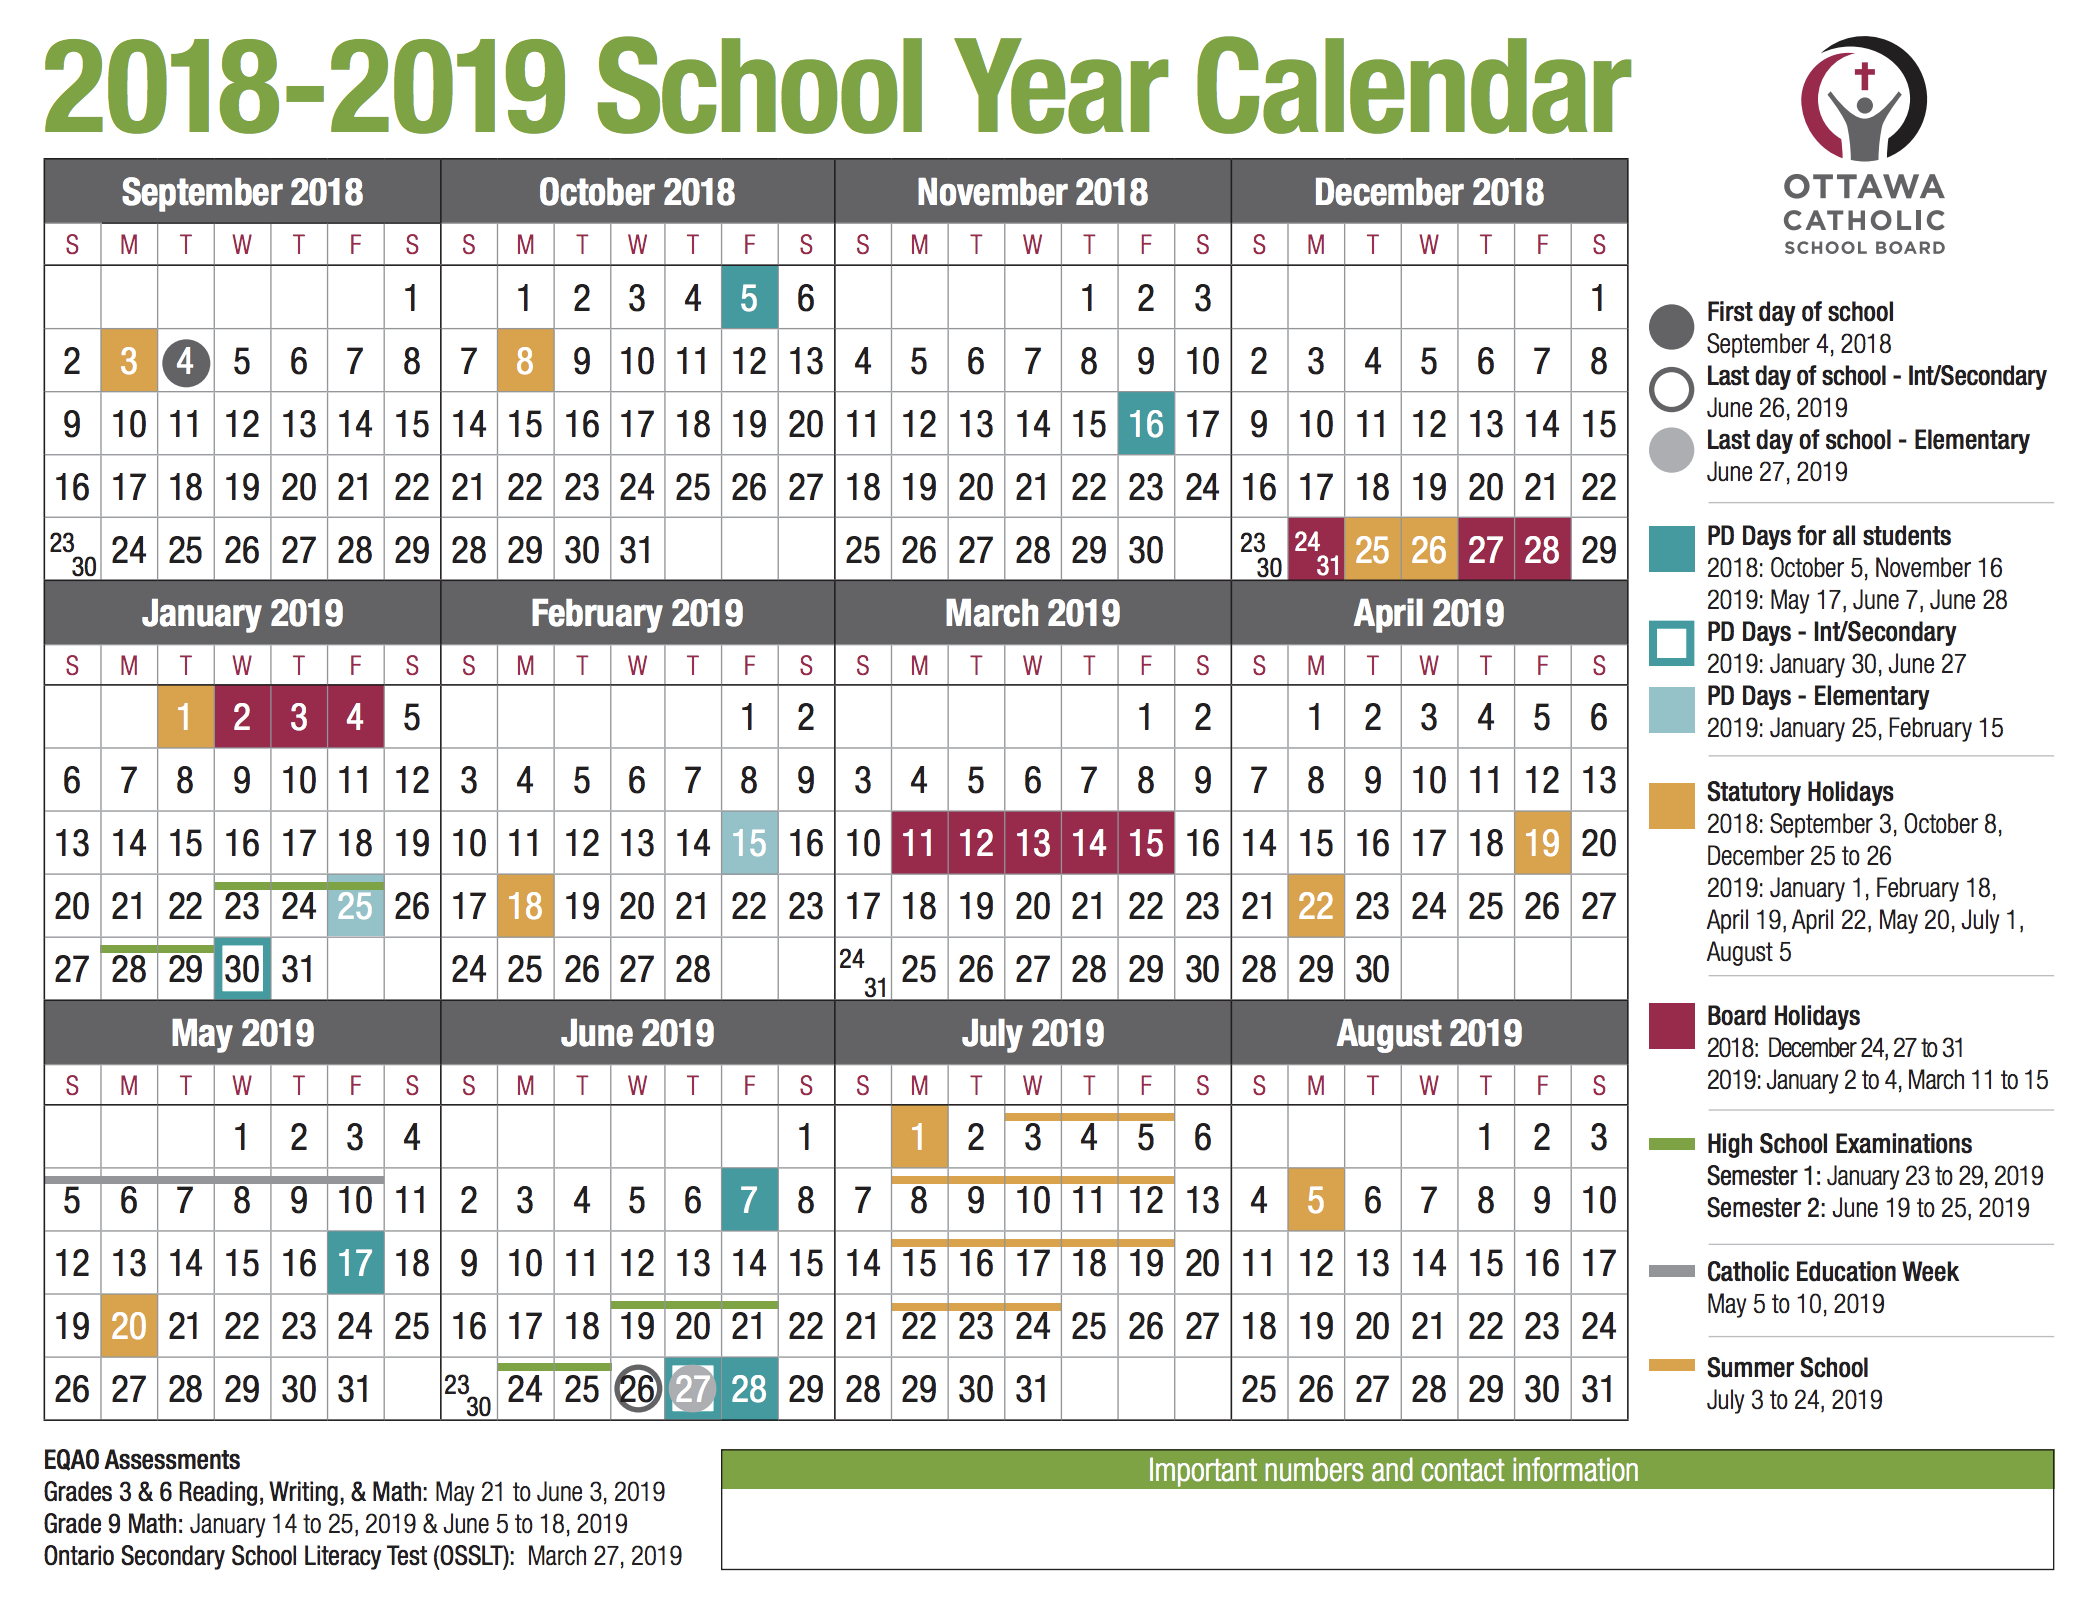 Ocsb-School-Year-Calendar-Image-2018-2019 - Ocsb pertaining to Six Nations School Caldendar 2019-2020